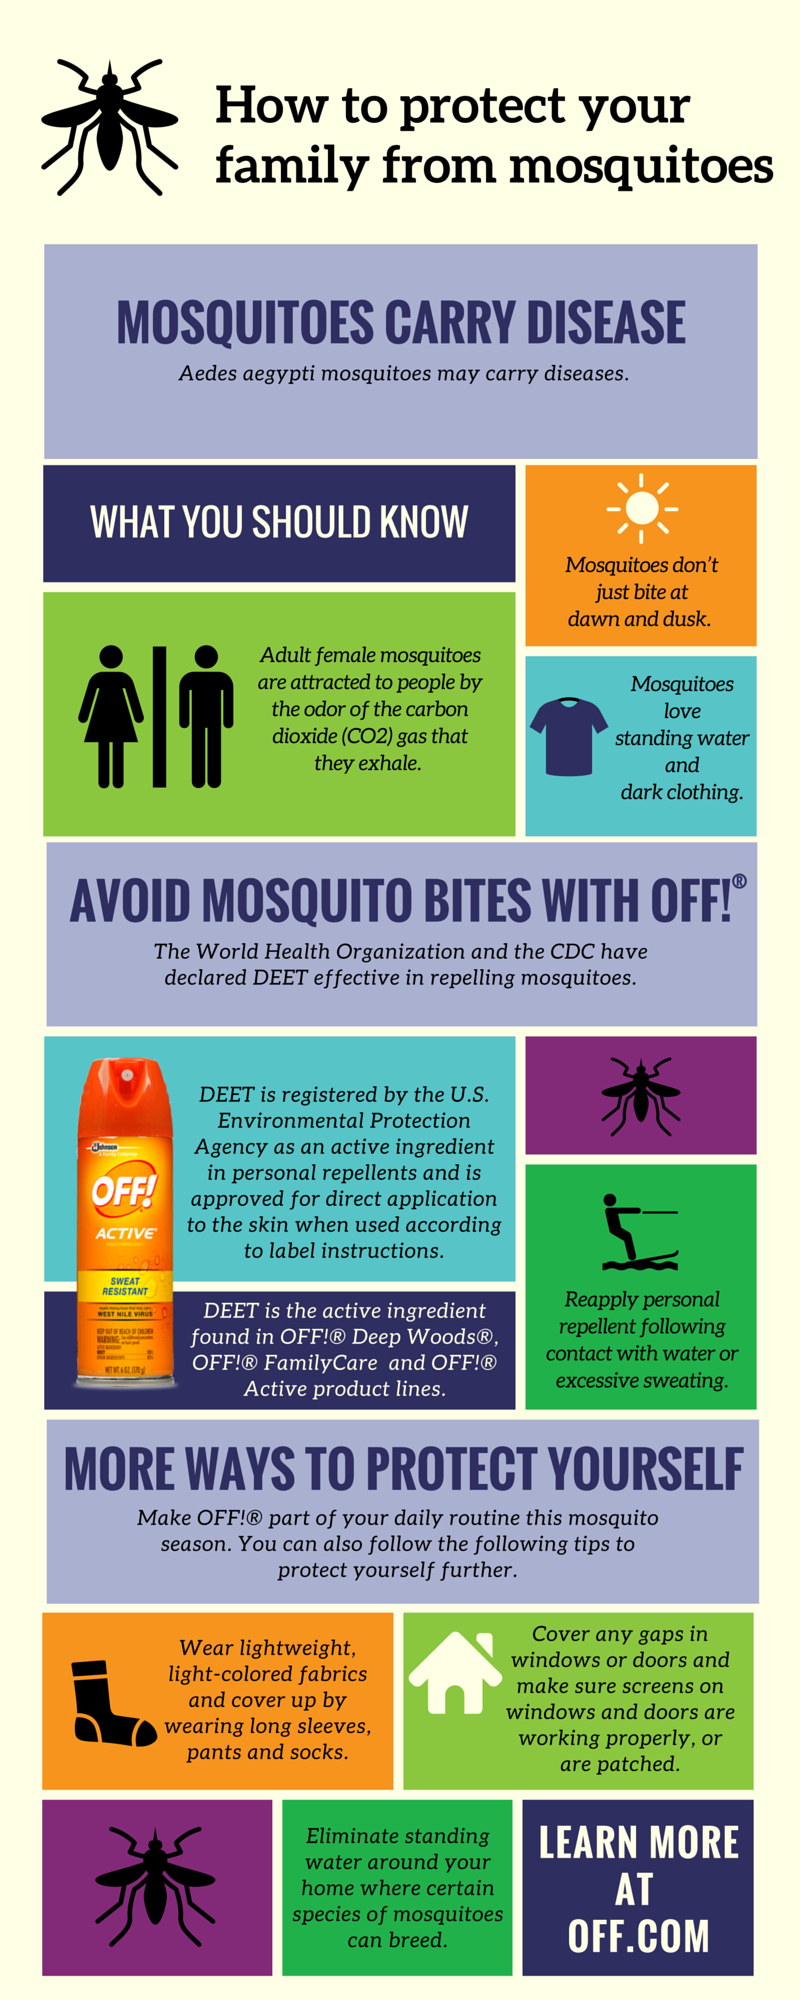 How to protect your family from mosquitos OFF INFOGRAPHIC